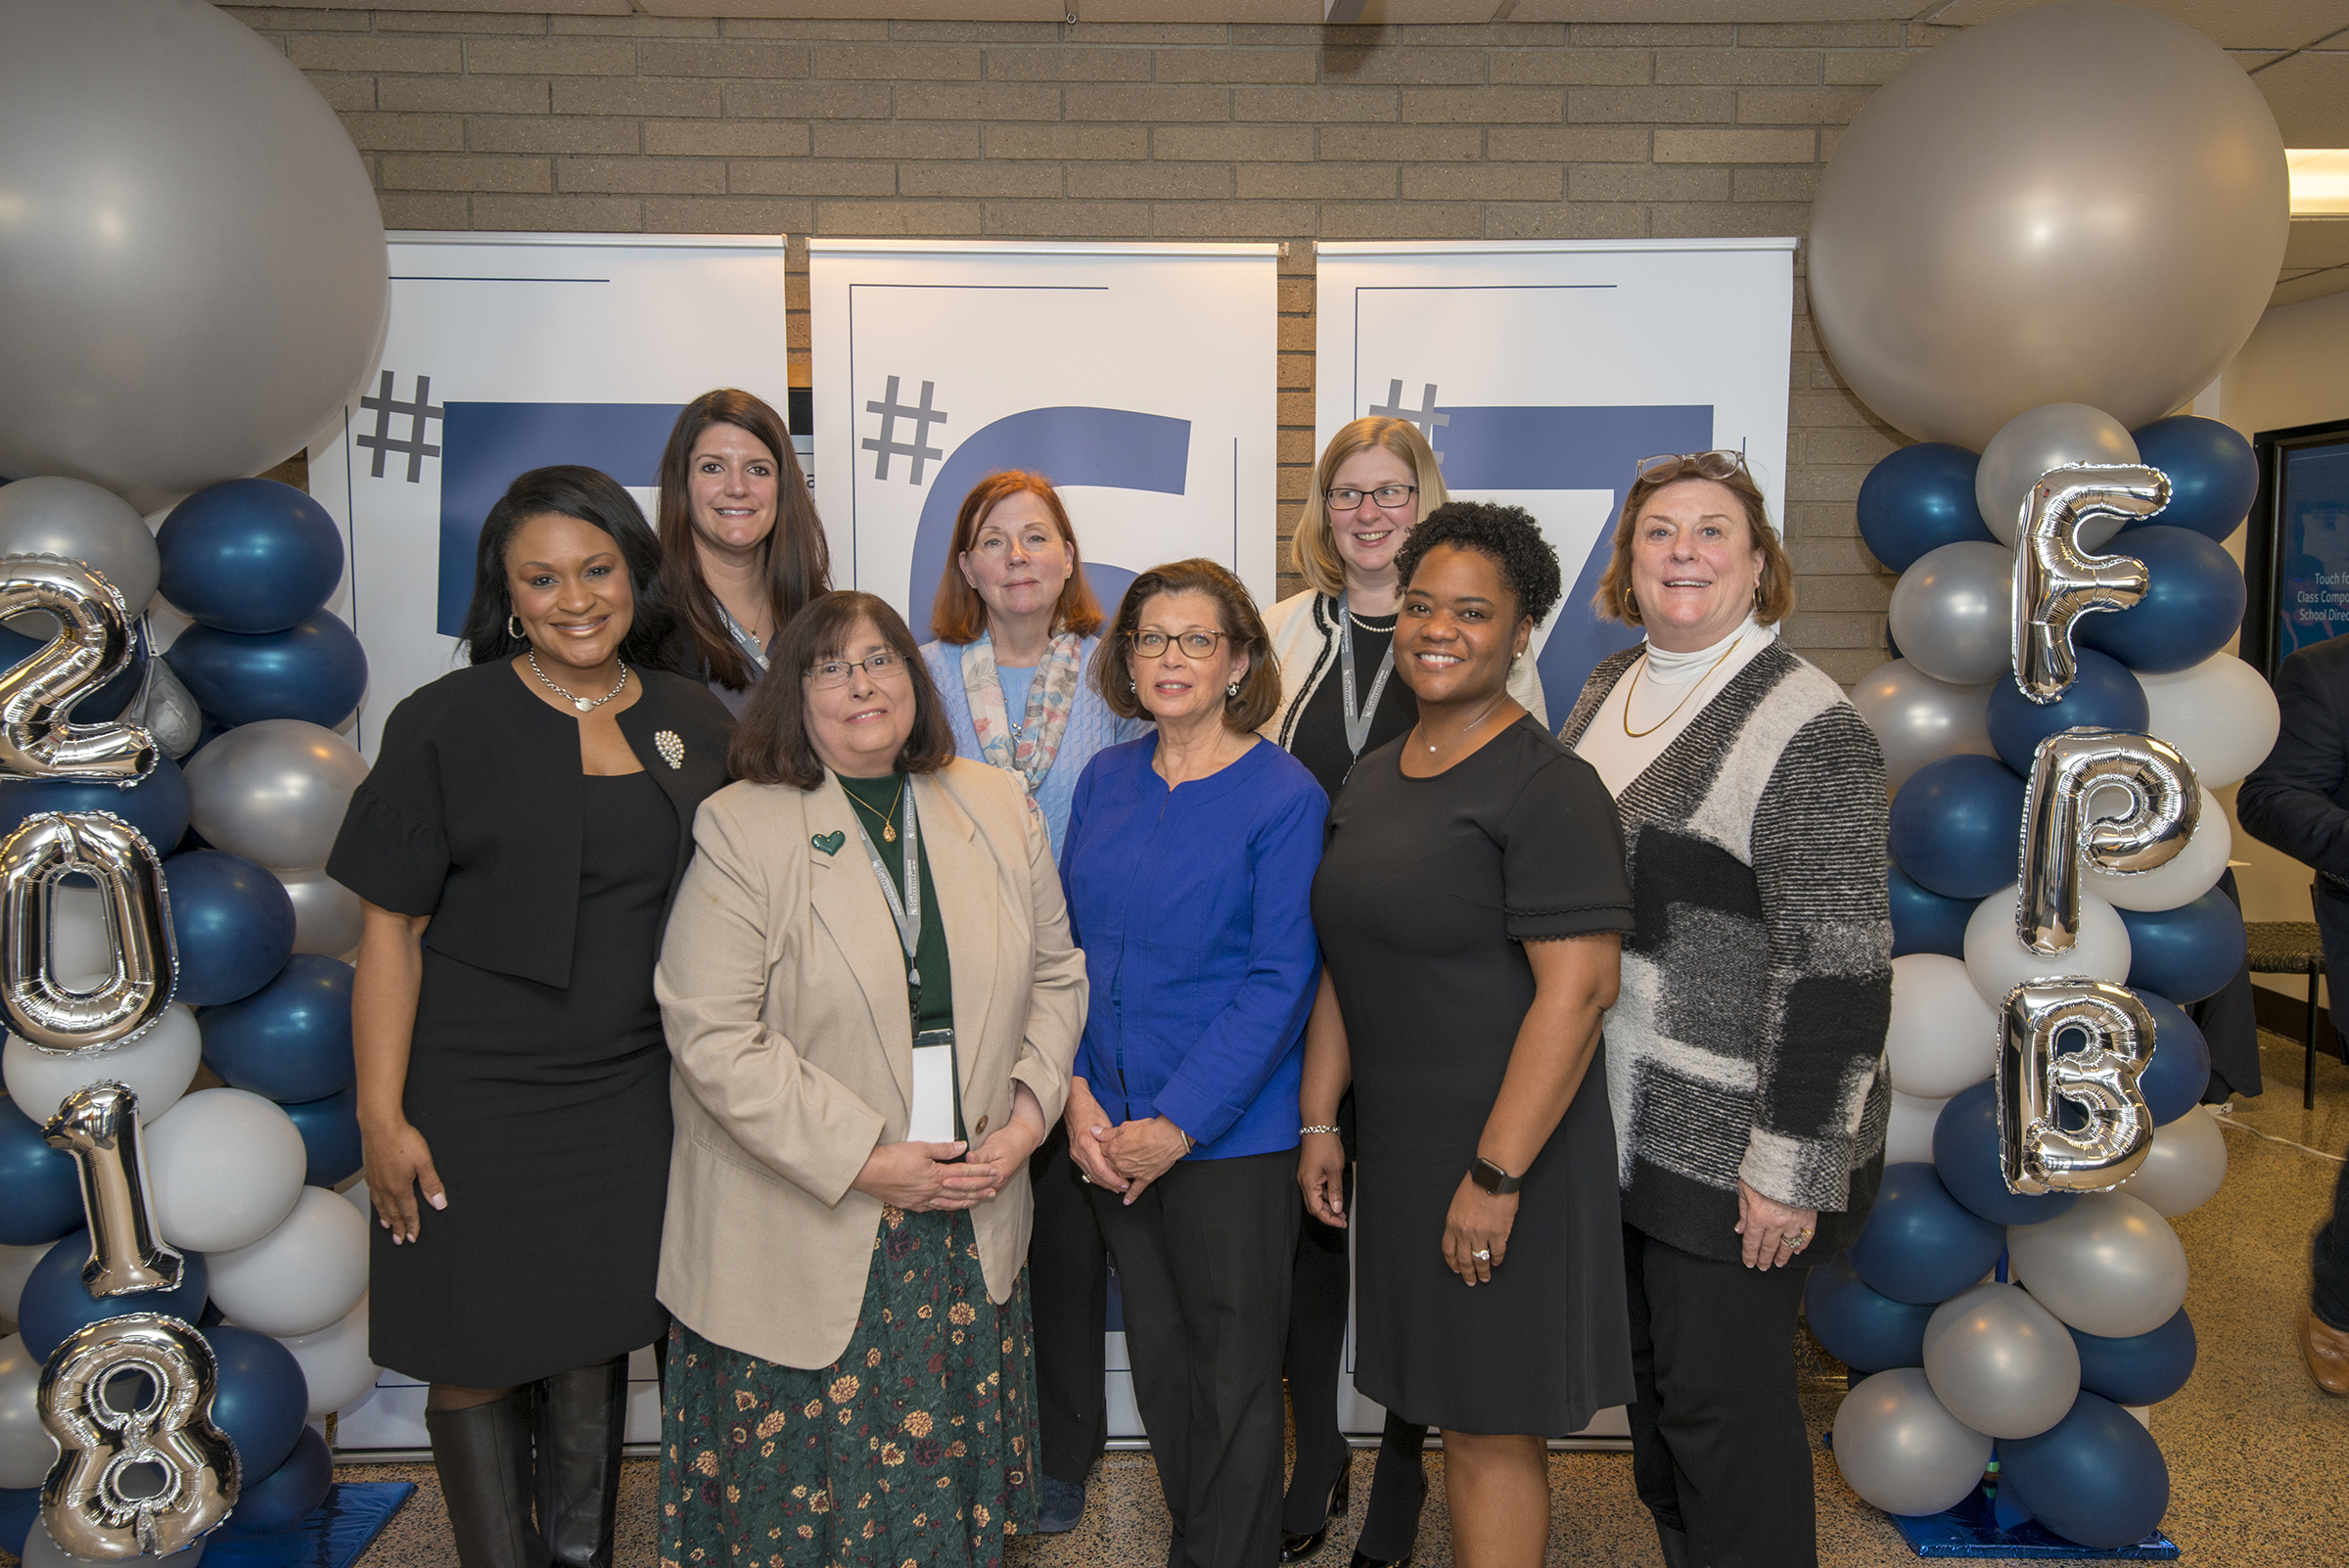 Group photo of the 2019 Alumni Association Executive Board at the Frances Payne Bolton School of Nursing at Case Western Reserve University in Cleveland, Ohio, one of the best nursing schools in the United States.